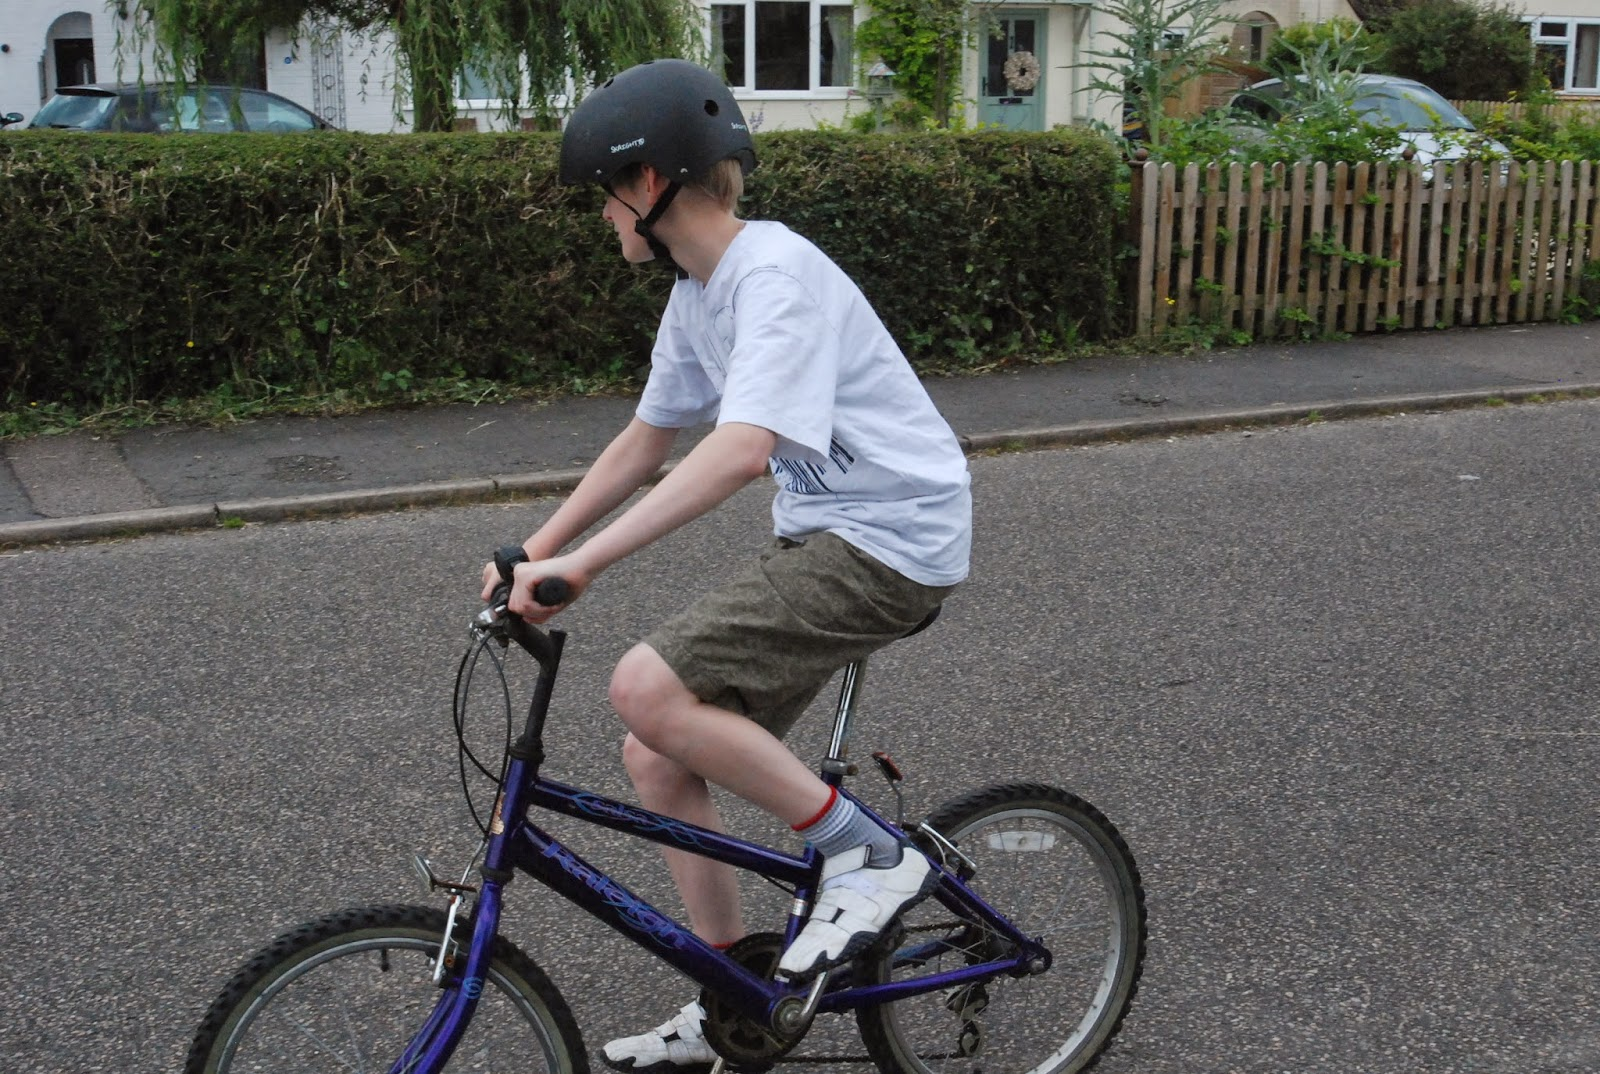 teen on bike wearing skater-style helmet